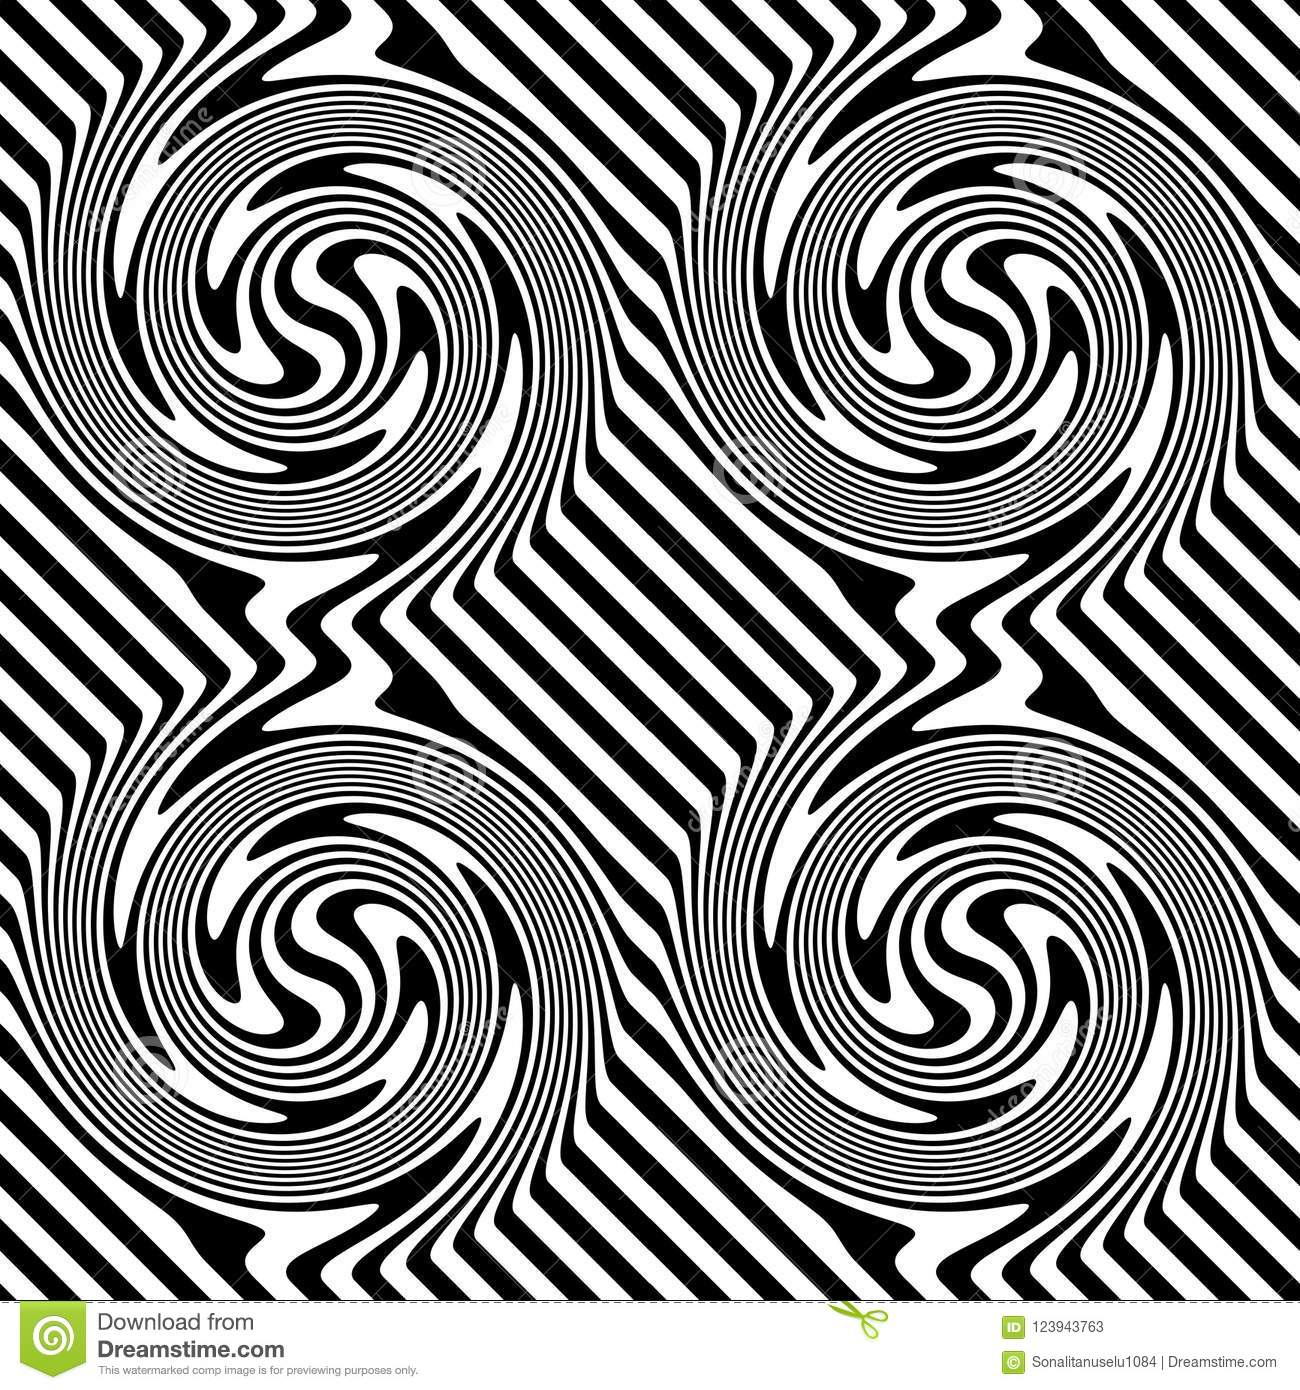 Vector Seamless Check Lines Pattern Black And White Abstract Background Wallpaper Illustration